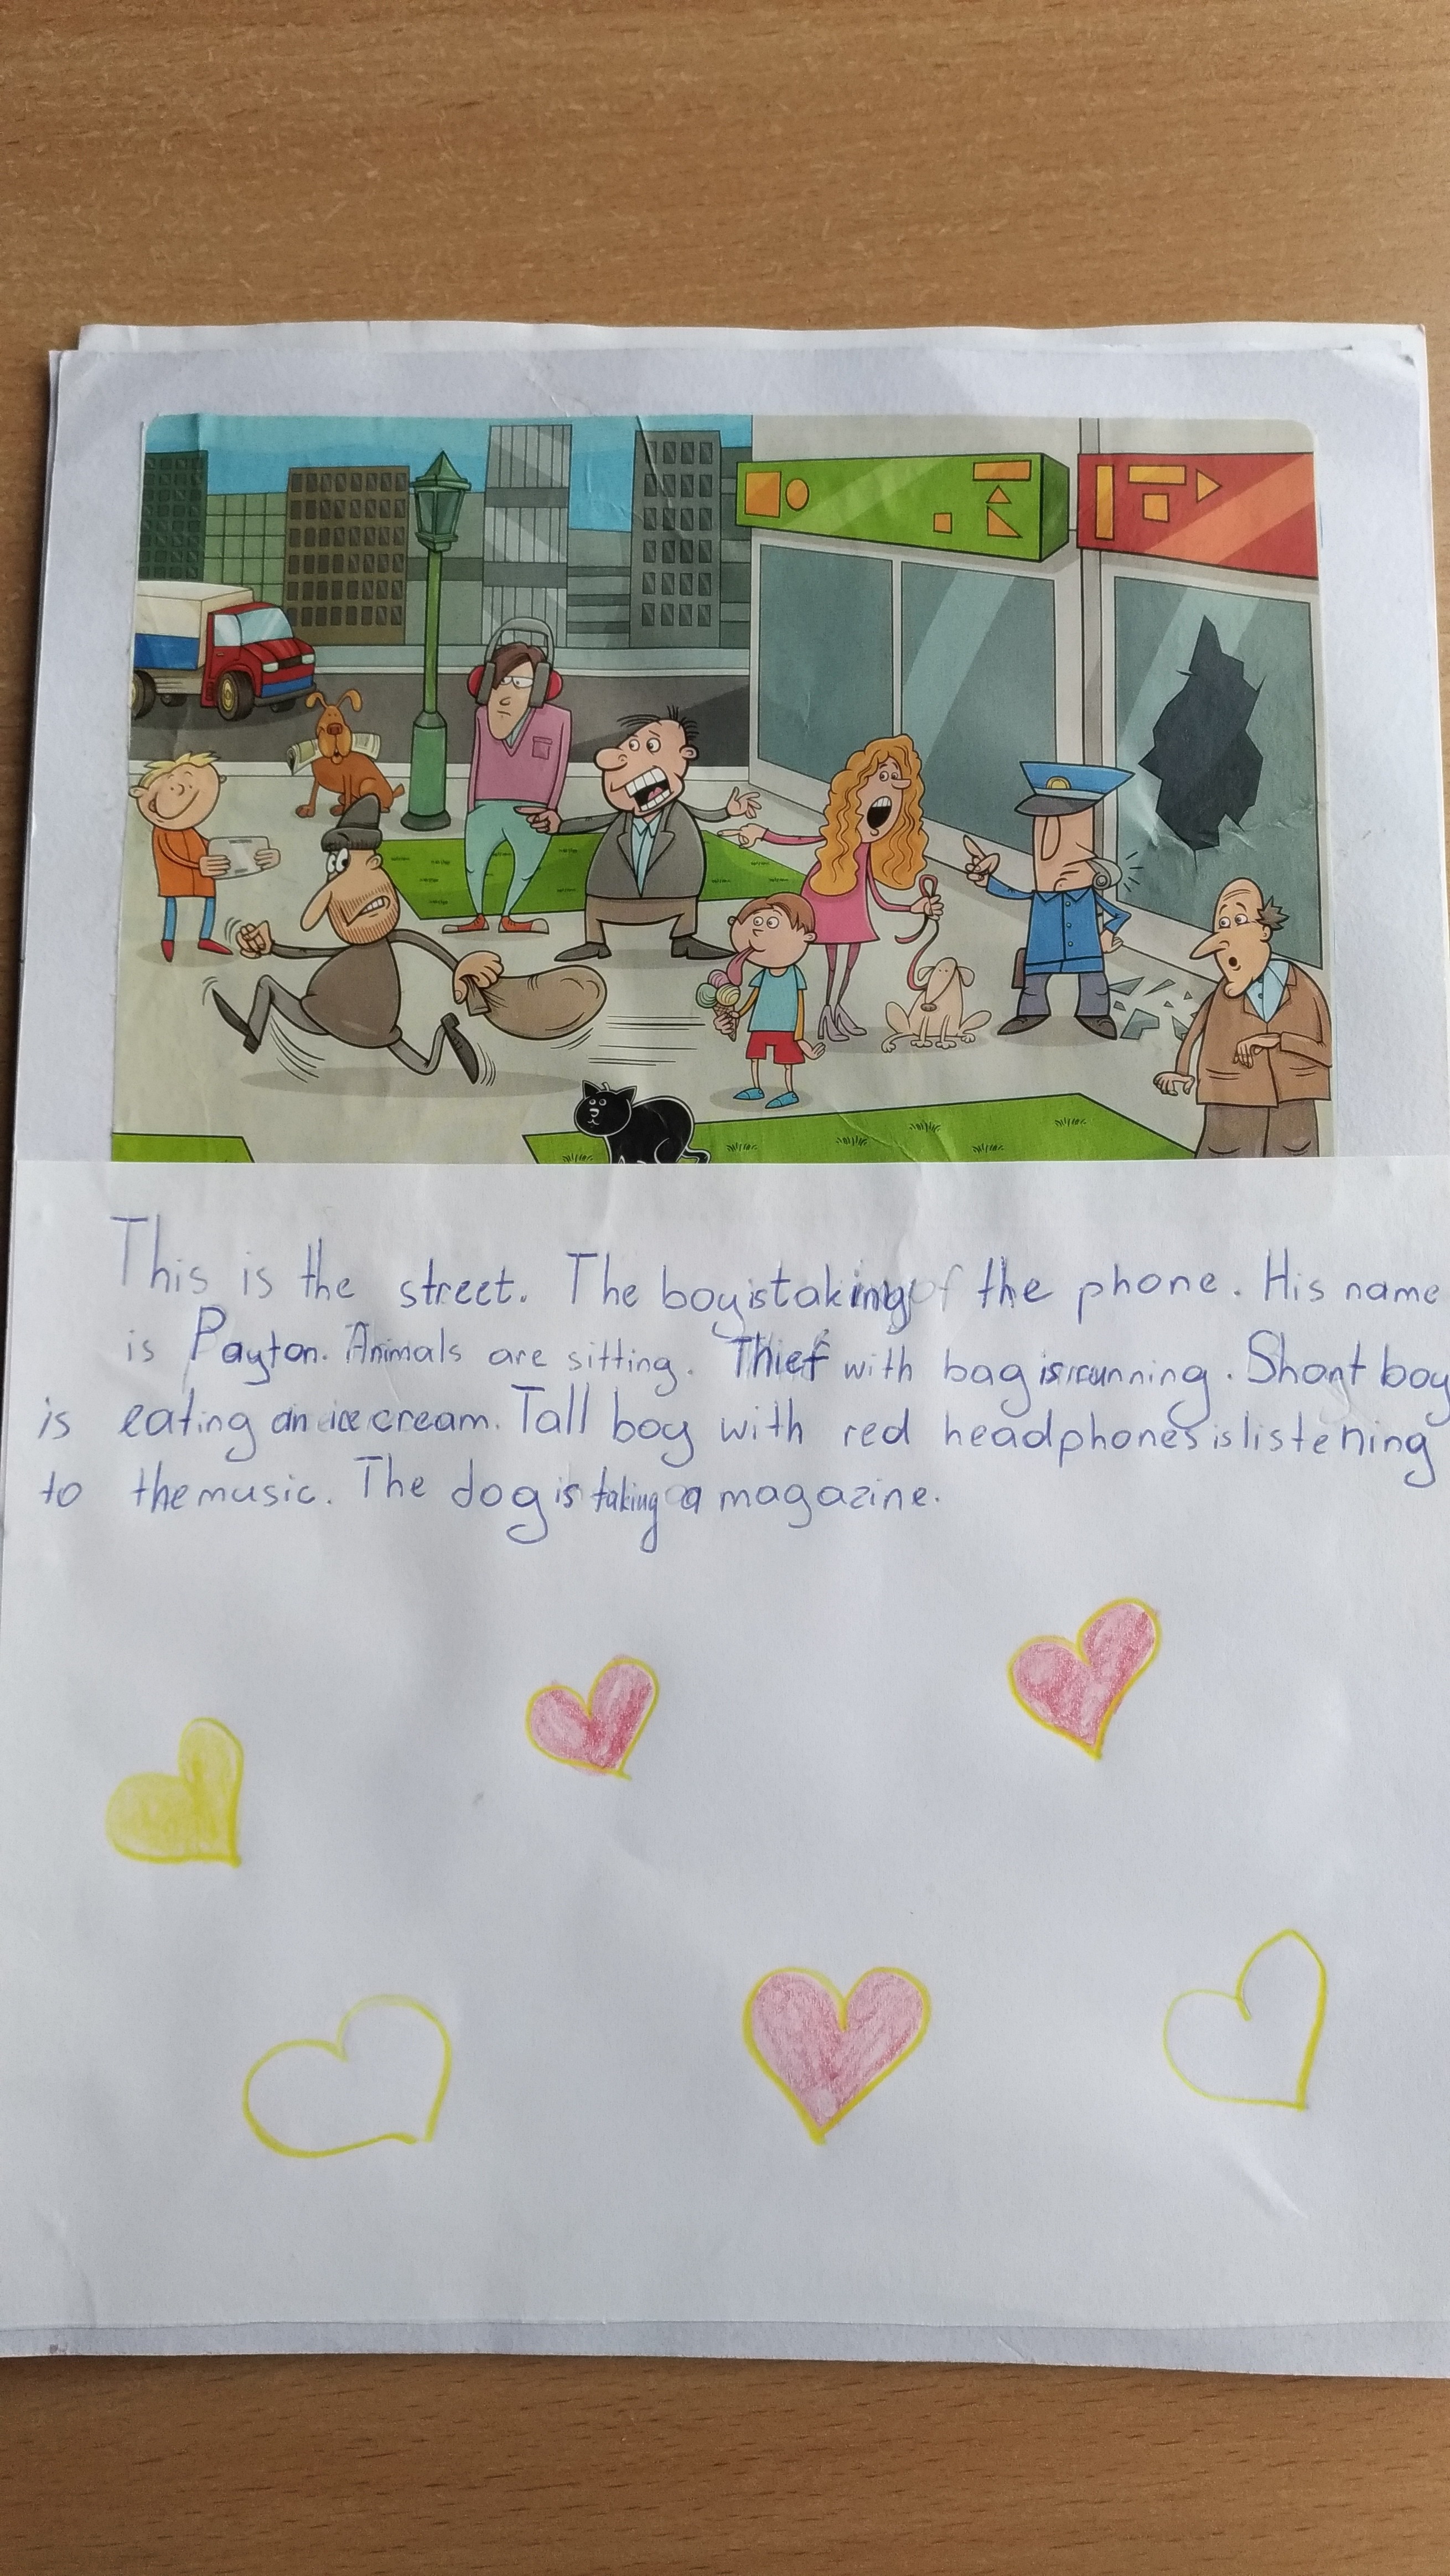 present-continuous-story-Level-A1-Grade-5-2